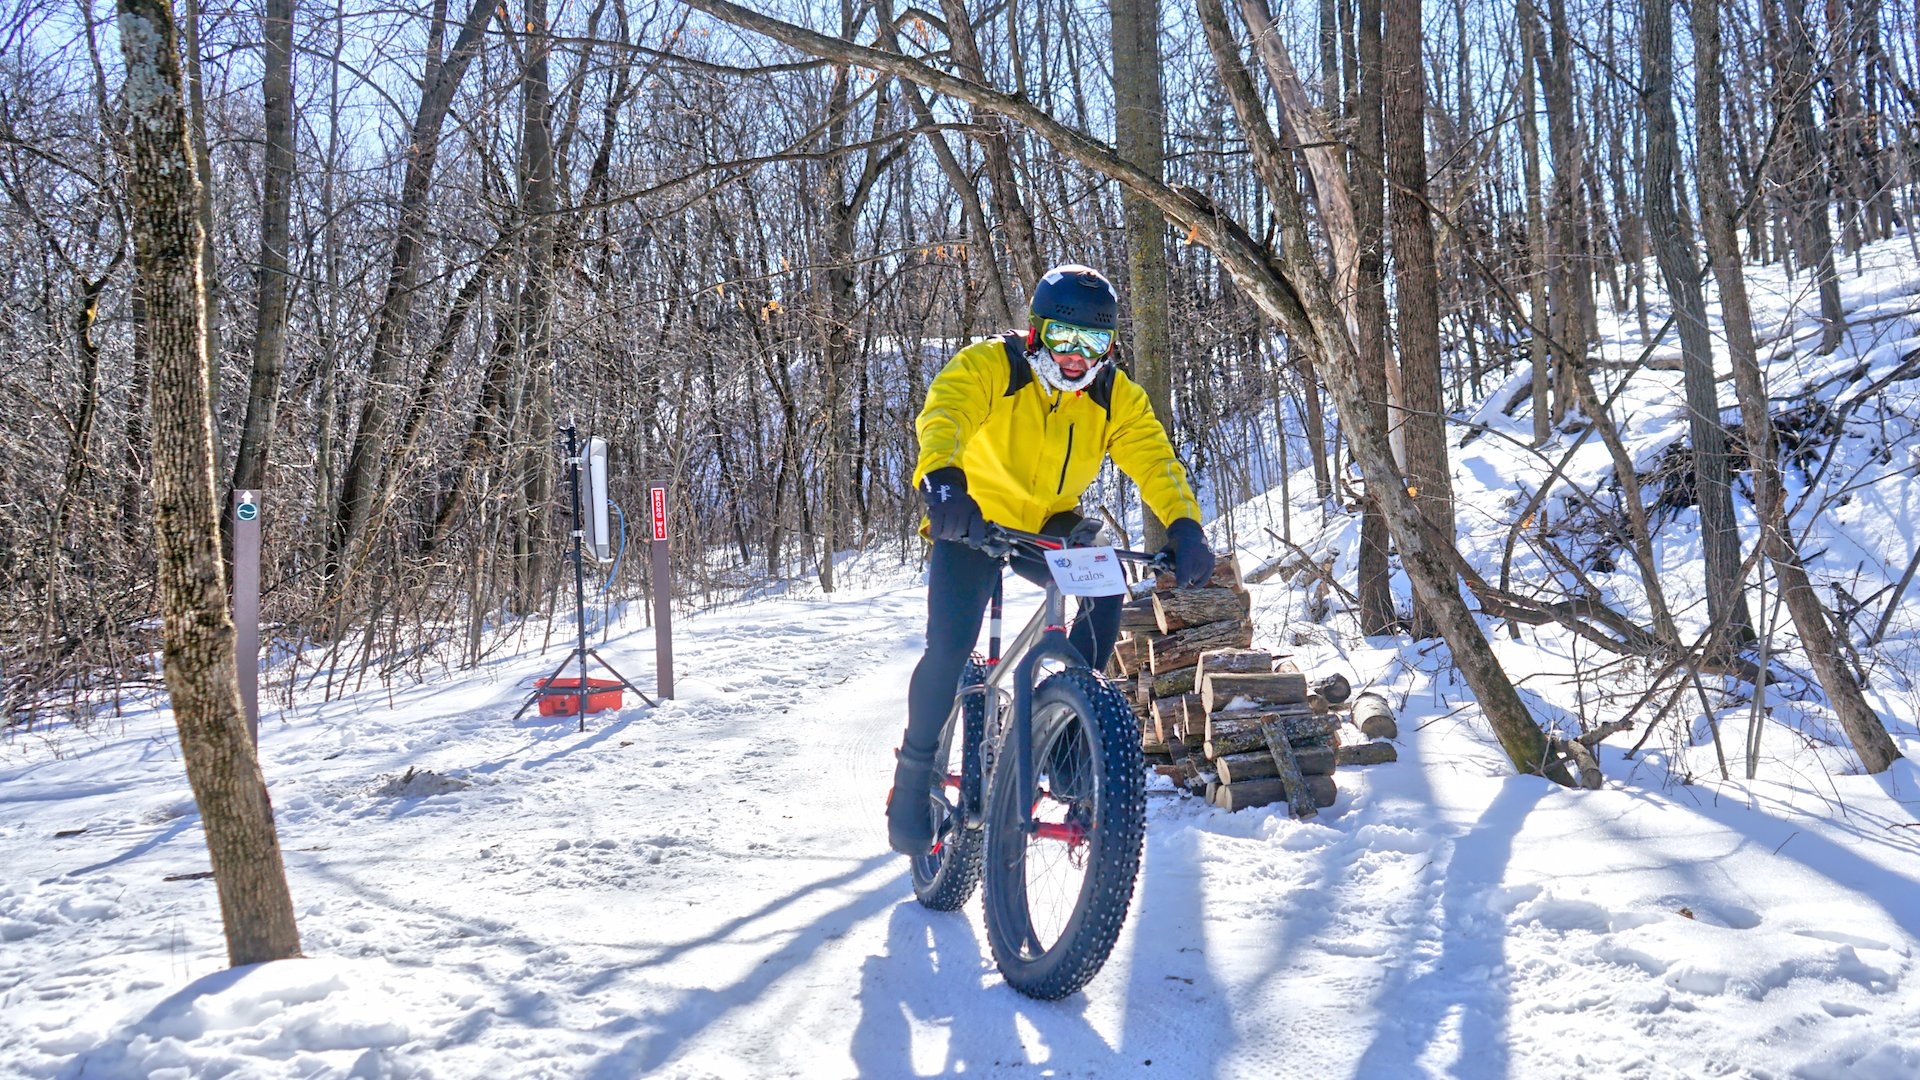 Big Tires, Big Adventure on 13 Miles of Trails at Elm Creek Park Reserve